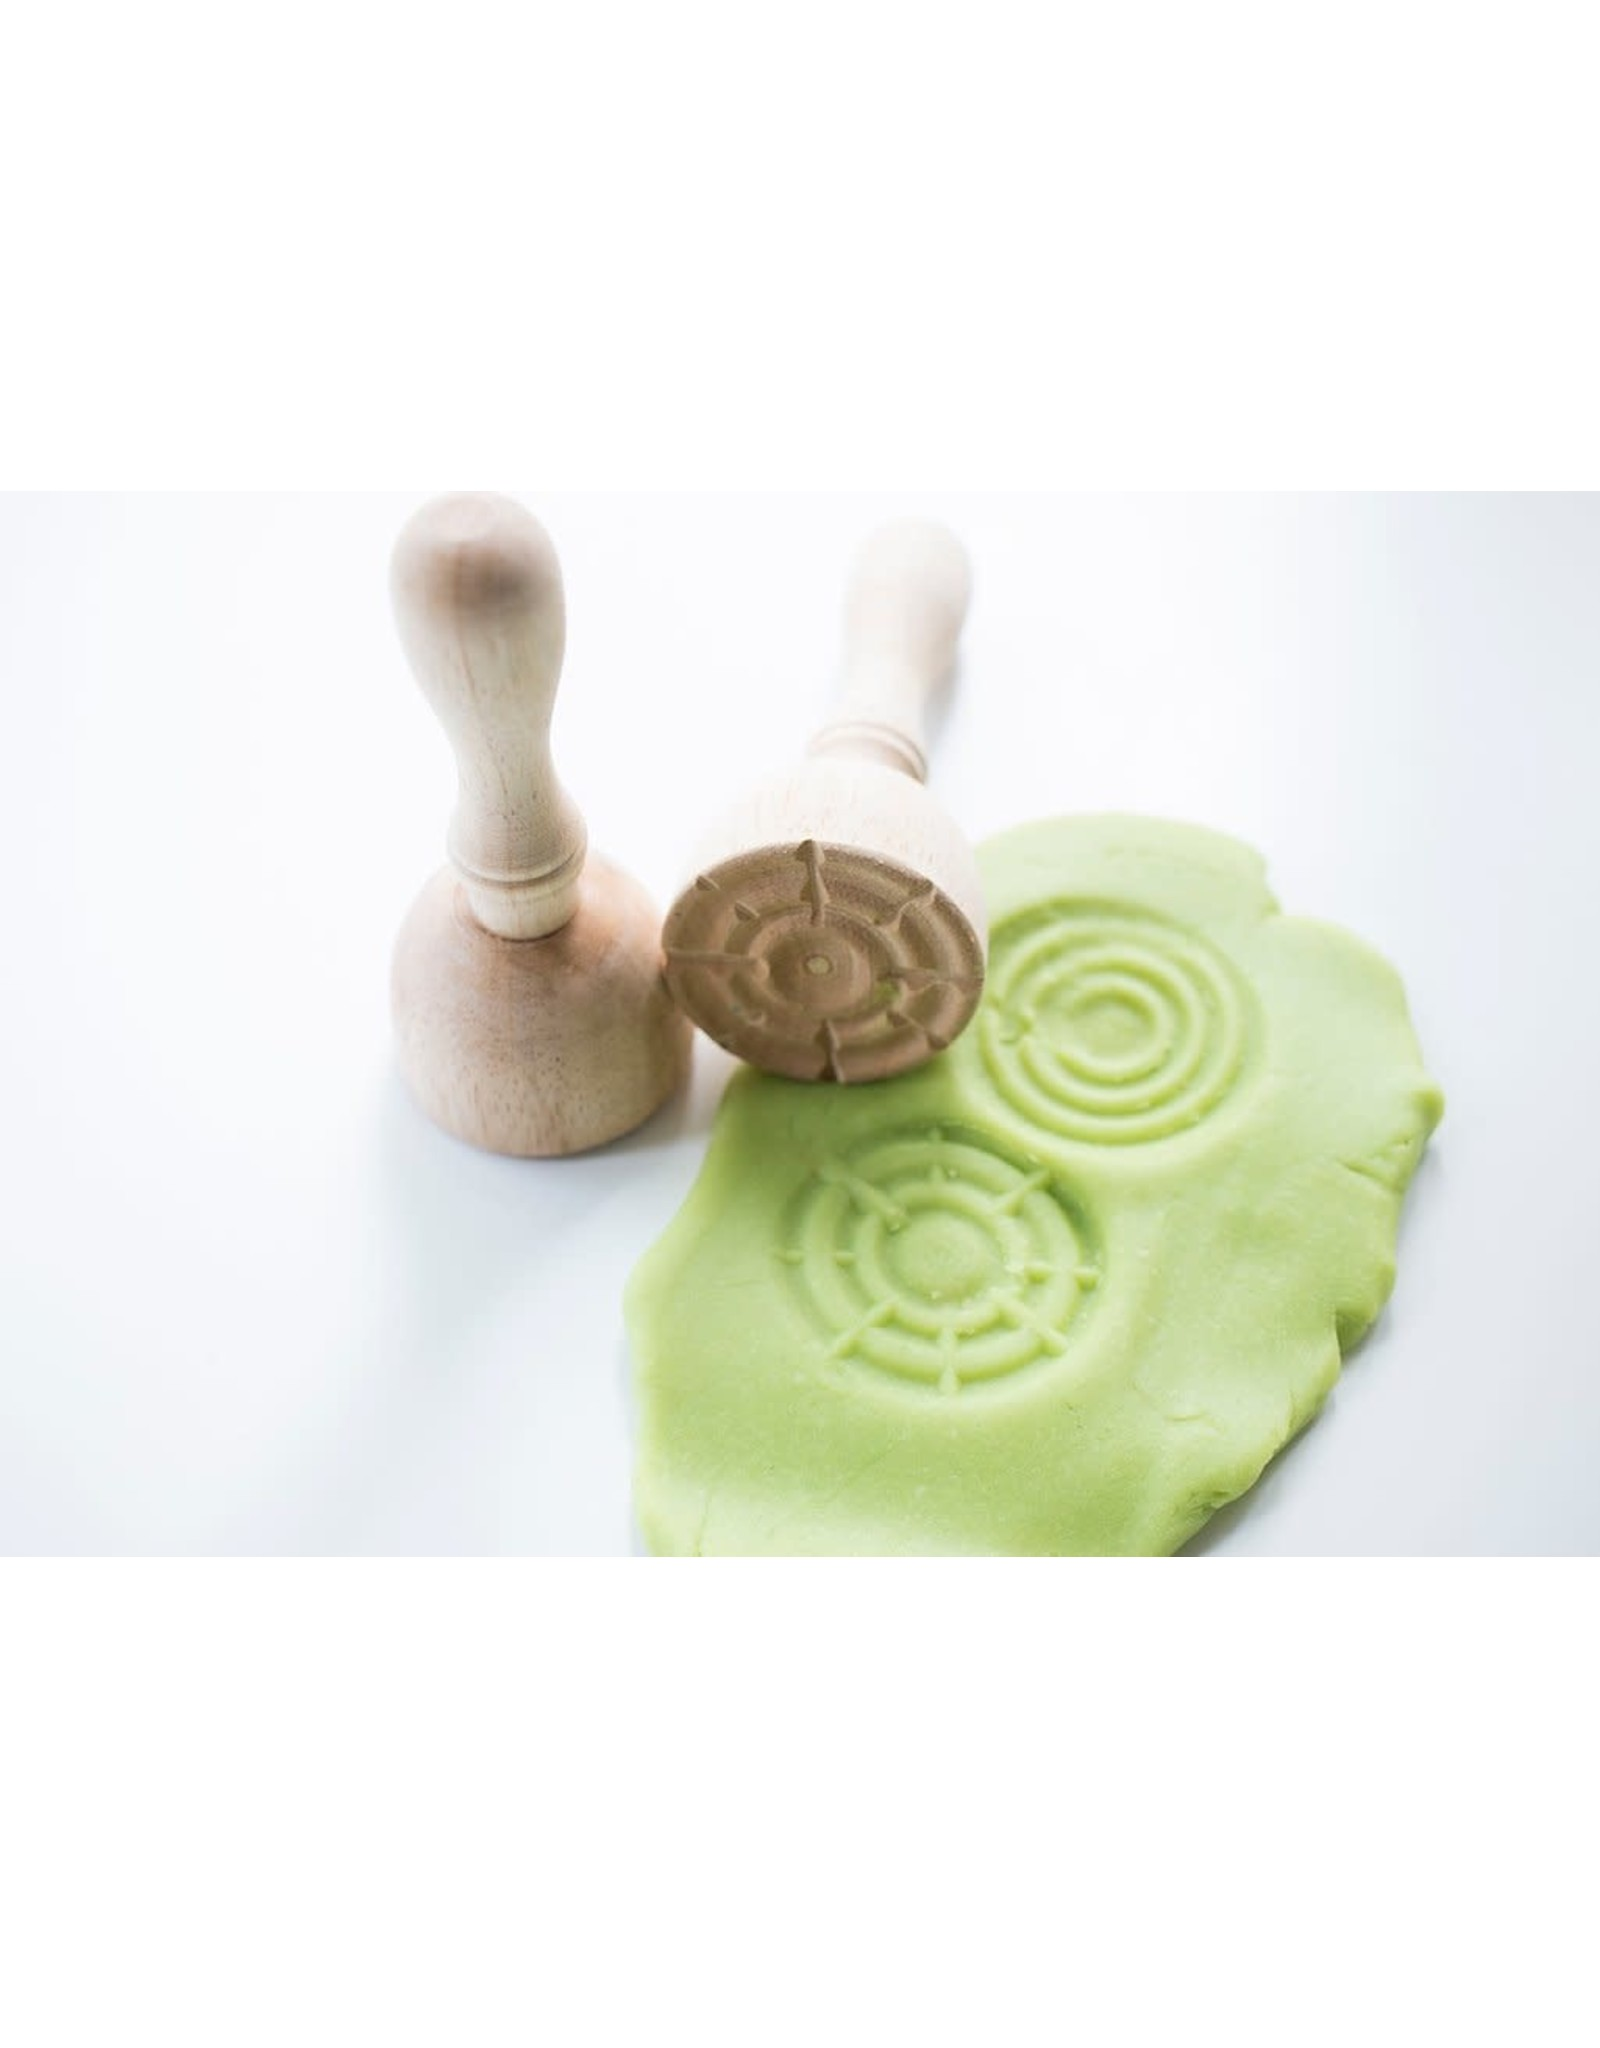 Little Larch Playdough Tools and Accessories